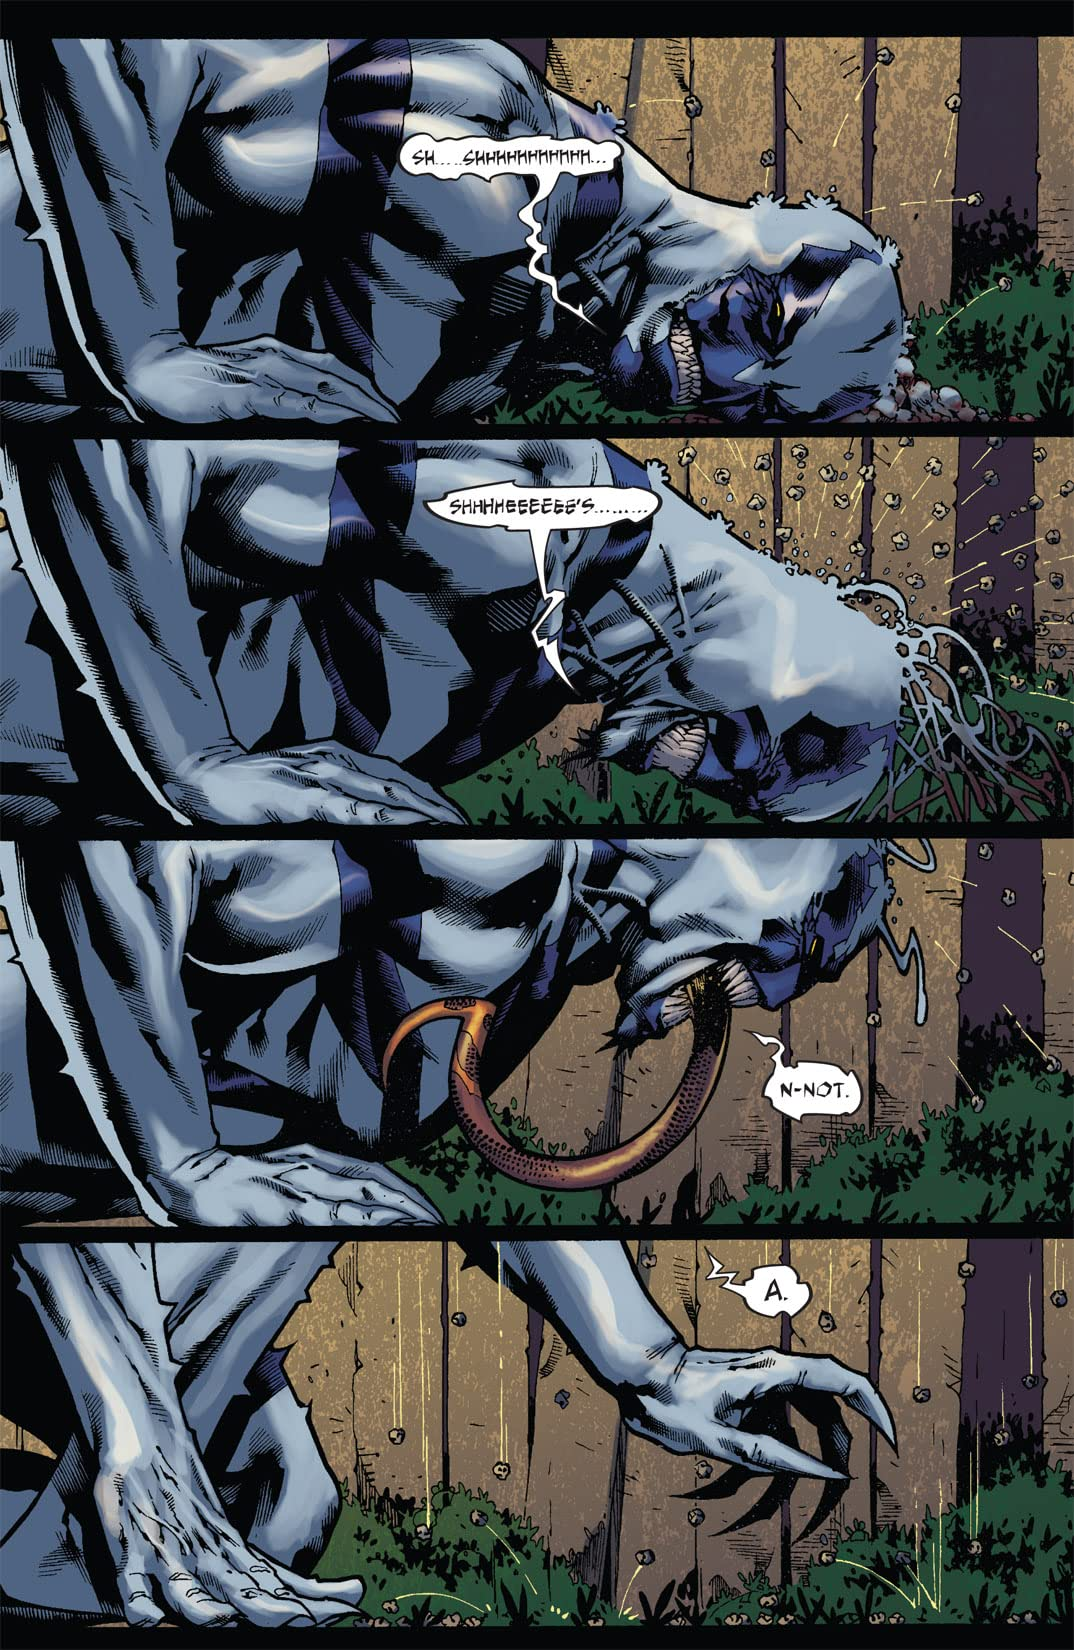 Spider-Man Presents: Anti-Venom #2 (of 3)